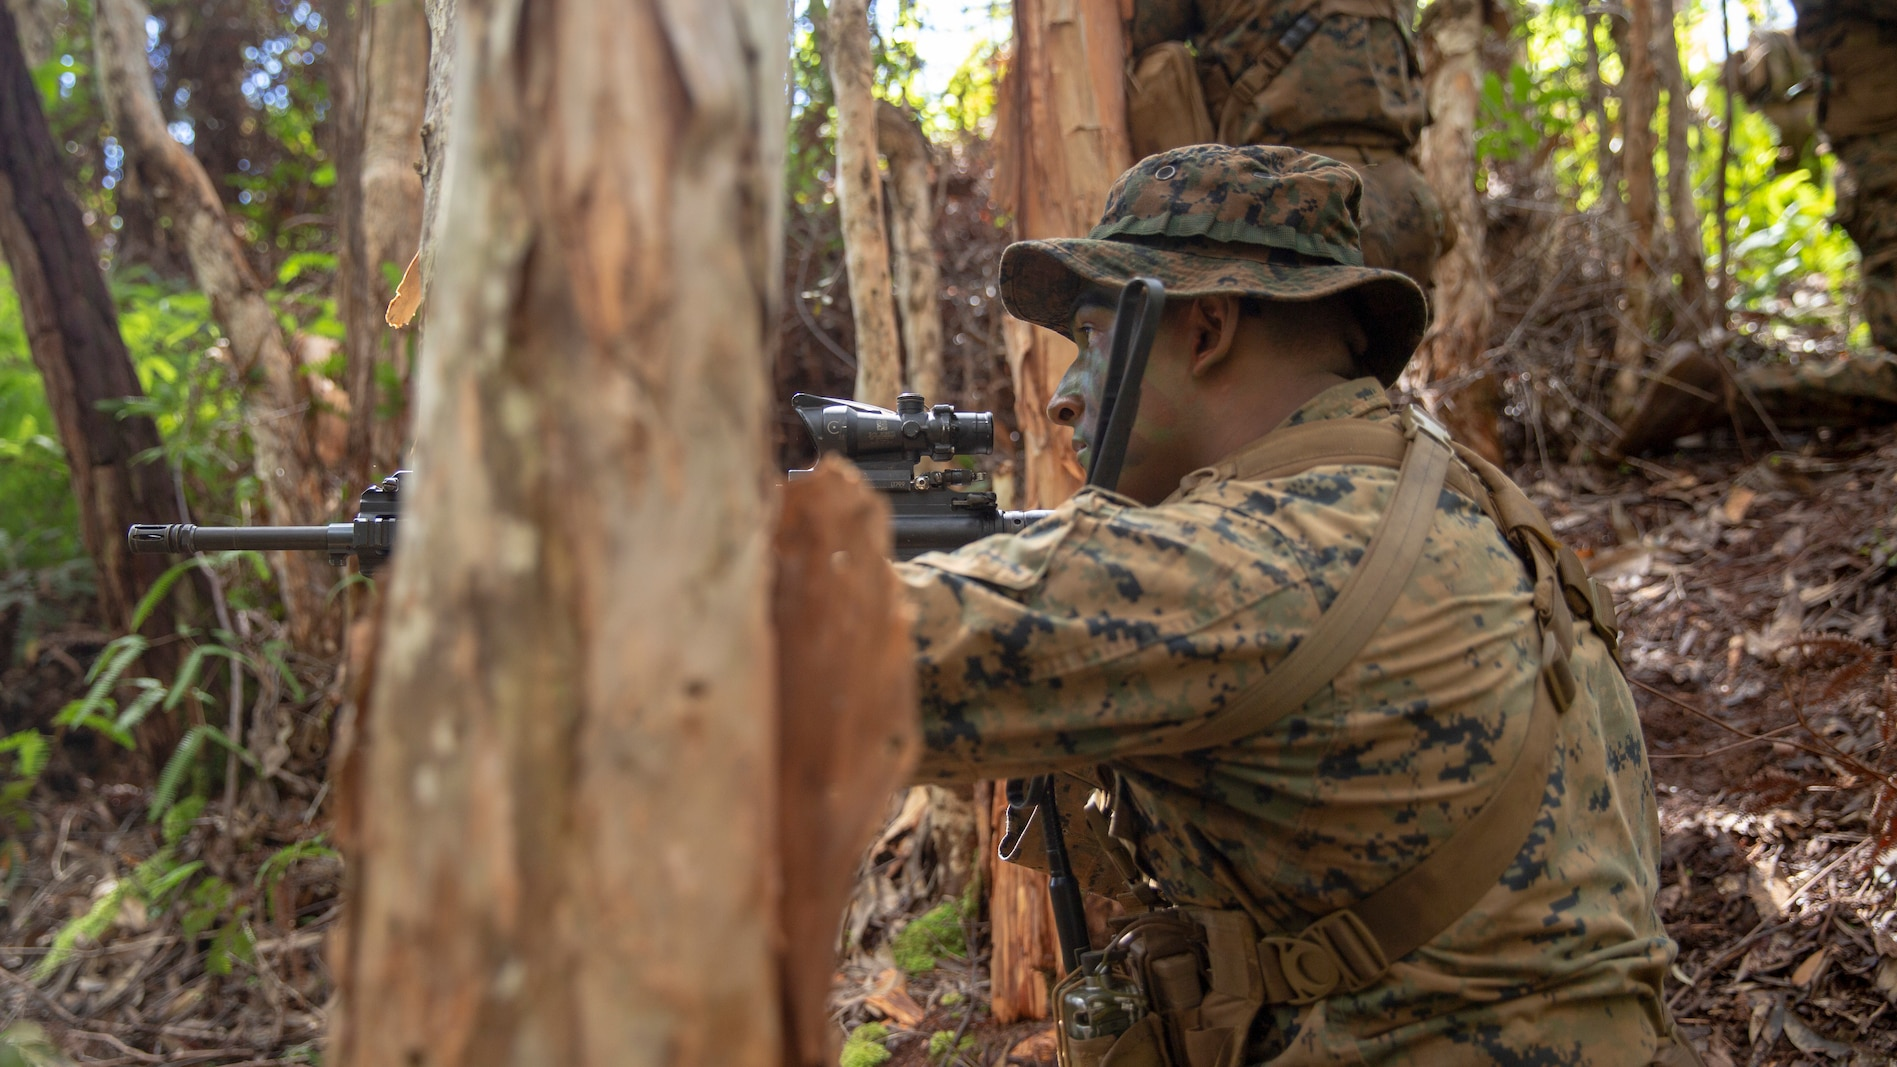 U.S. Marine Corps Sgt. Allen Valdez with kilo company, 3rd Battalion, 3rd Marine Regiment sights down range during a squad patrol at Schofield Barracks, Hawaii, Feb. 25, 2020. Bougainville I is the beginning exercise that focus on squad level battle drills and tactical training aiming to strengthen the units pre-deployment readiness. (U.S. Marine Corps photo by Cpl. Eric Tso)